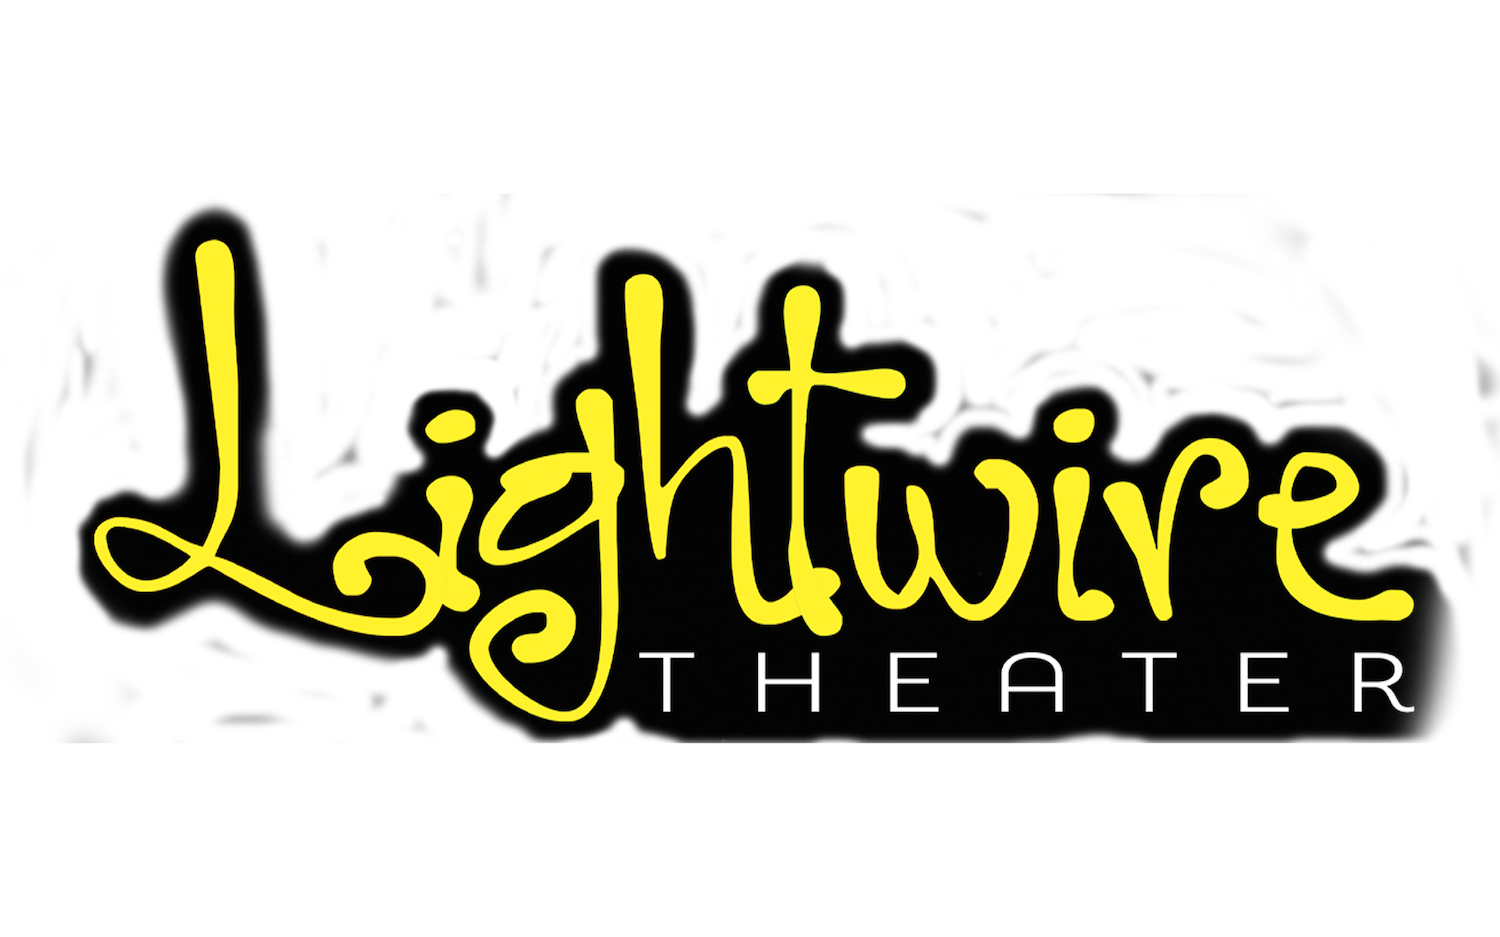 the ugly duckling u2014 lightwire theater